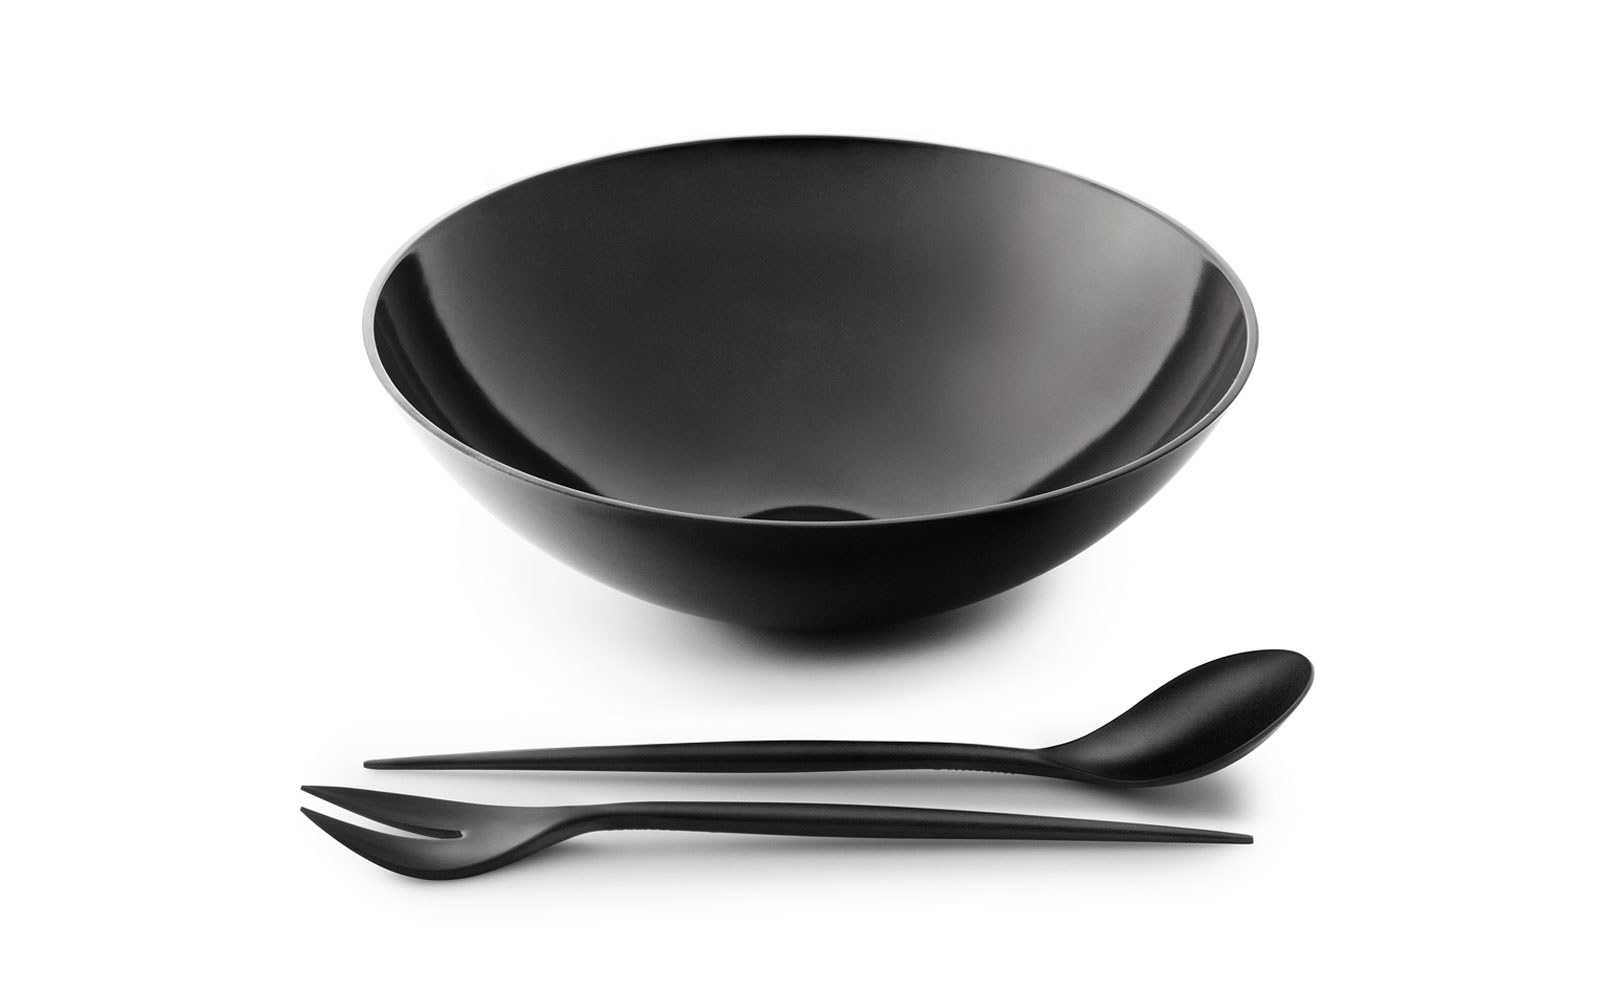 Krenit salad set and salad bowl black